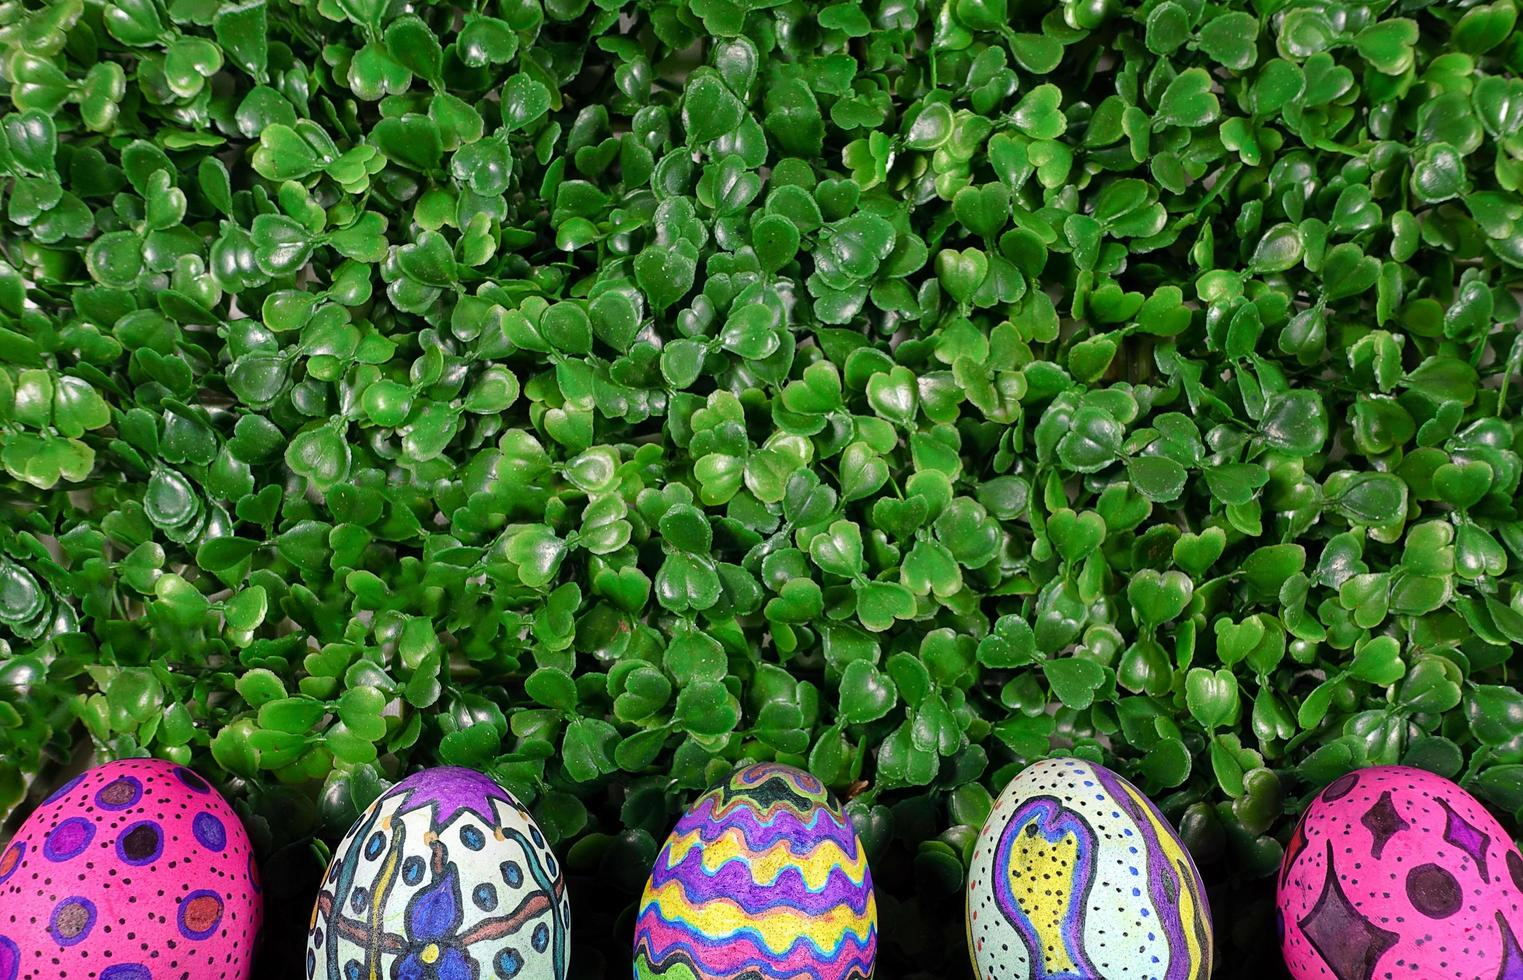 Paschal Easter Eggs Holiday Celebration in Spring Time photo